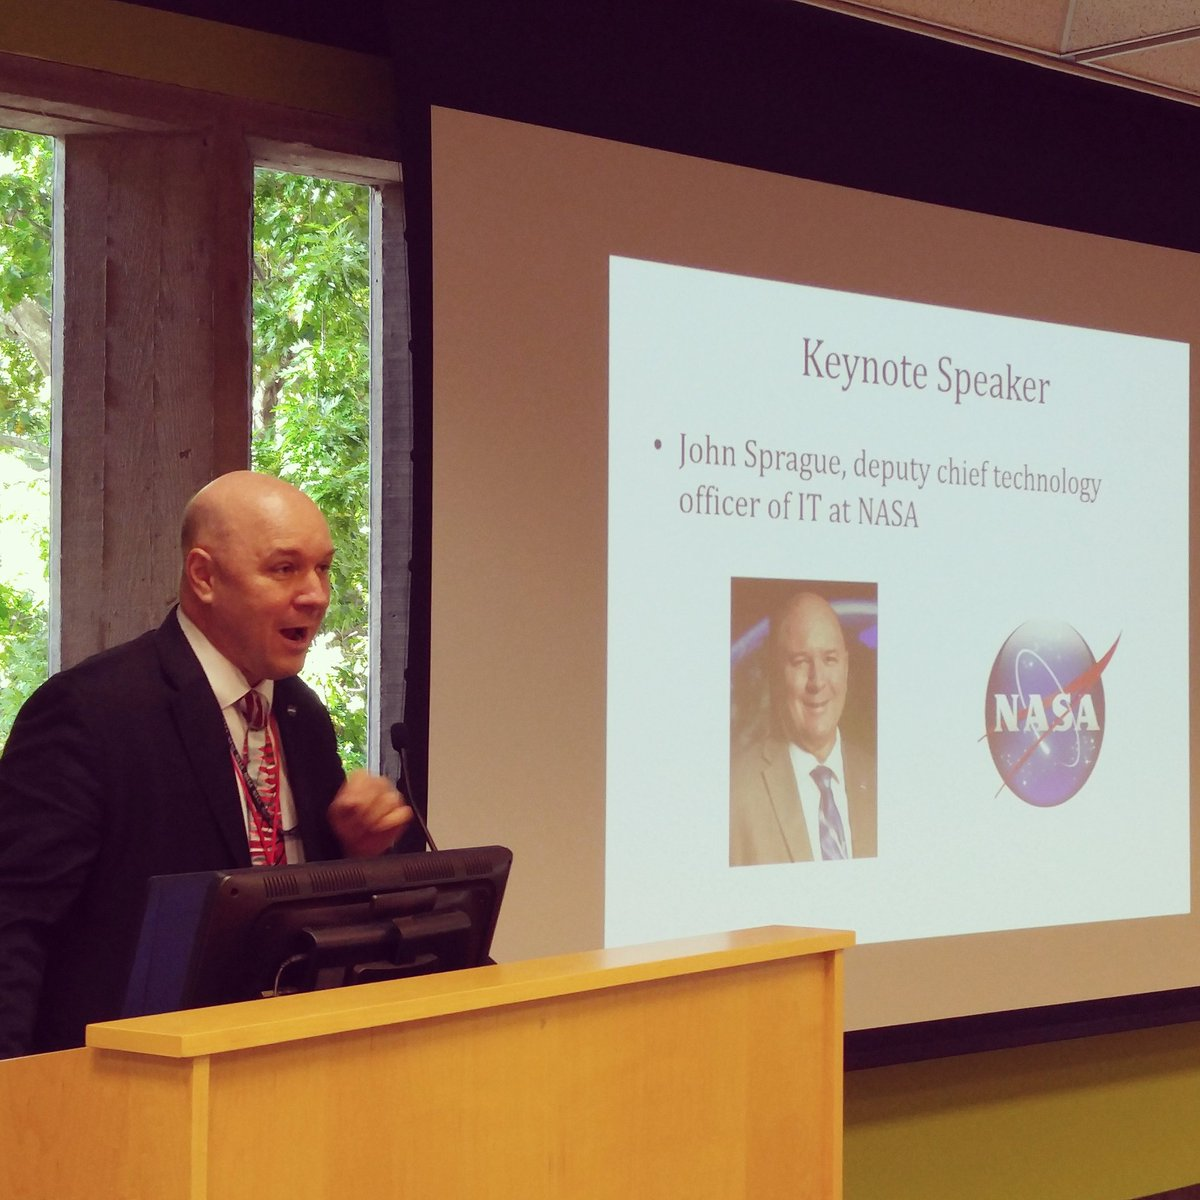 John Sprague helped found SpaceApps and is here at #spaceappsorl to kick off day 1 !! https://t.co/cFvx0MYjF1